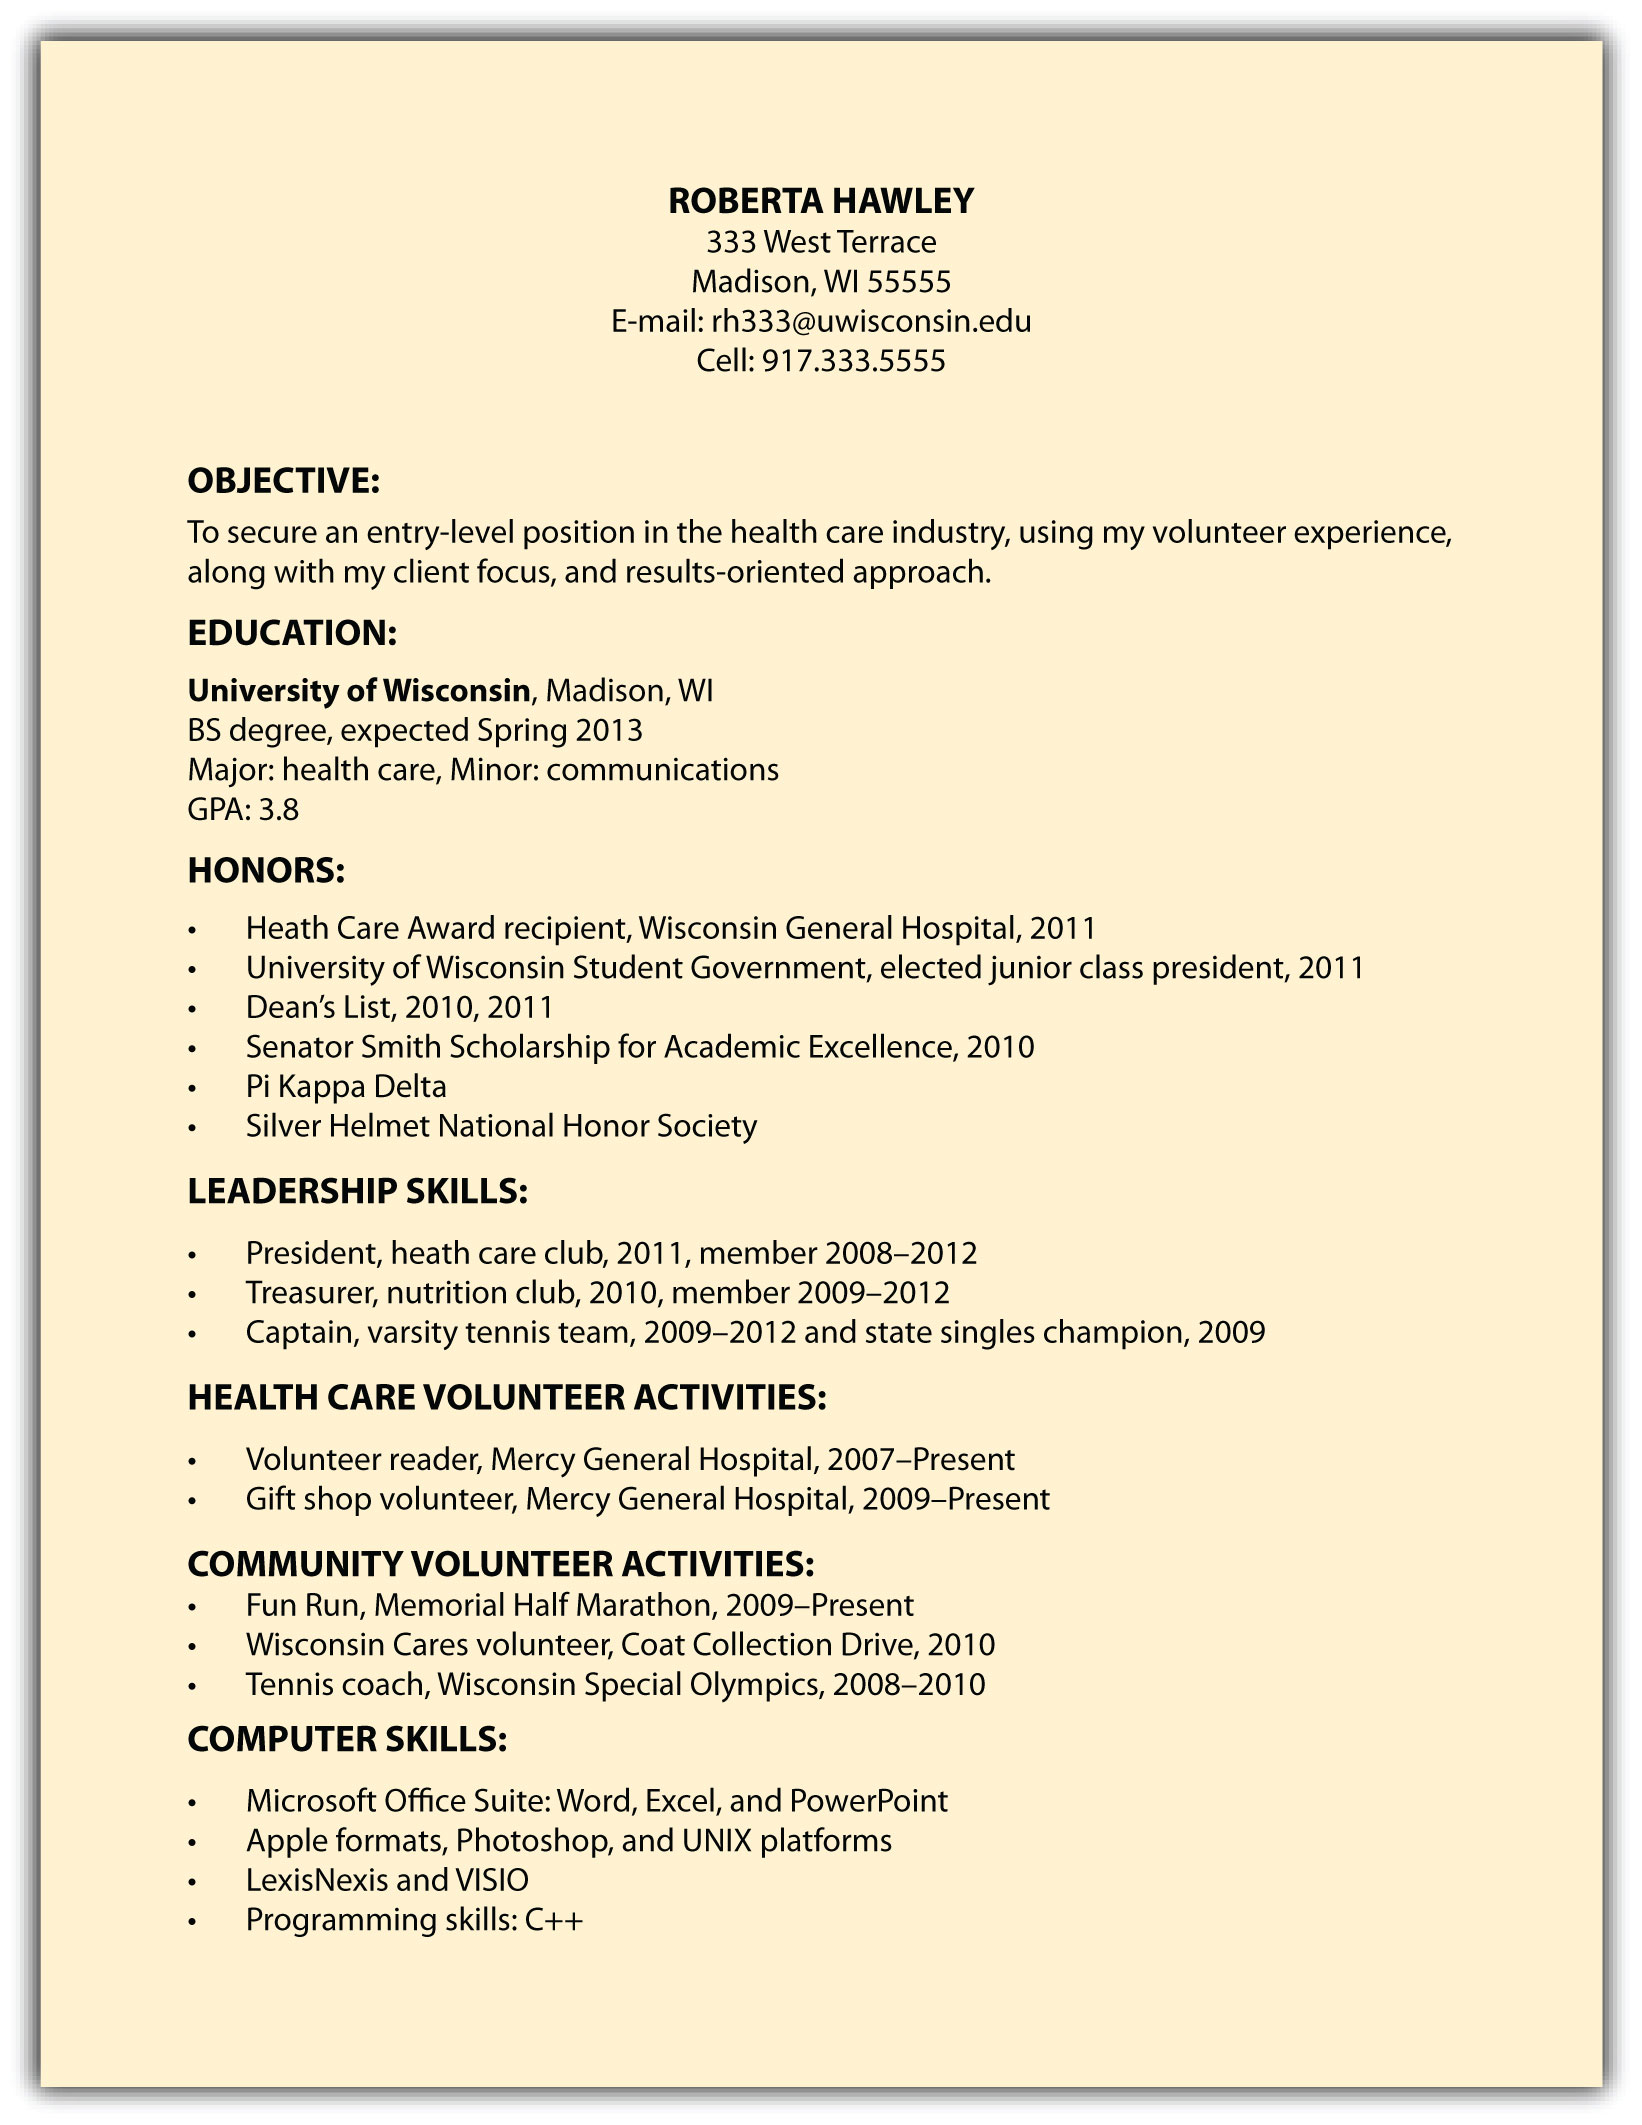 Resume Accomplishments For Prison Manager